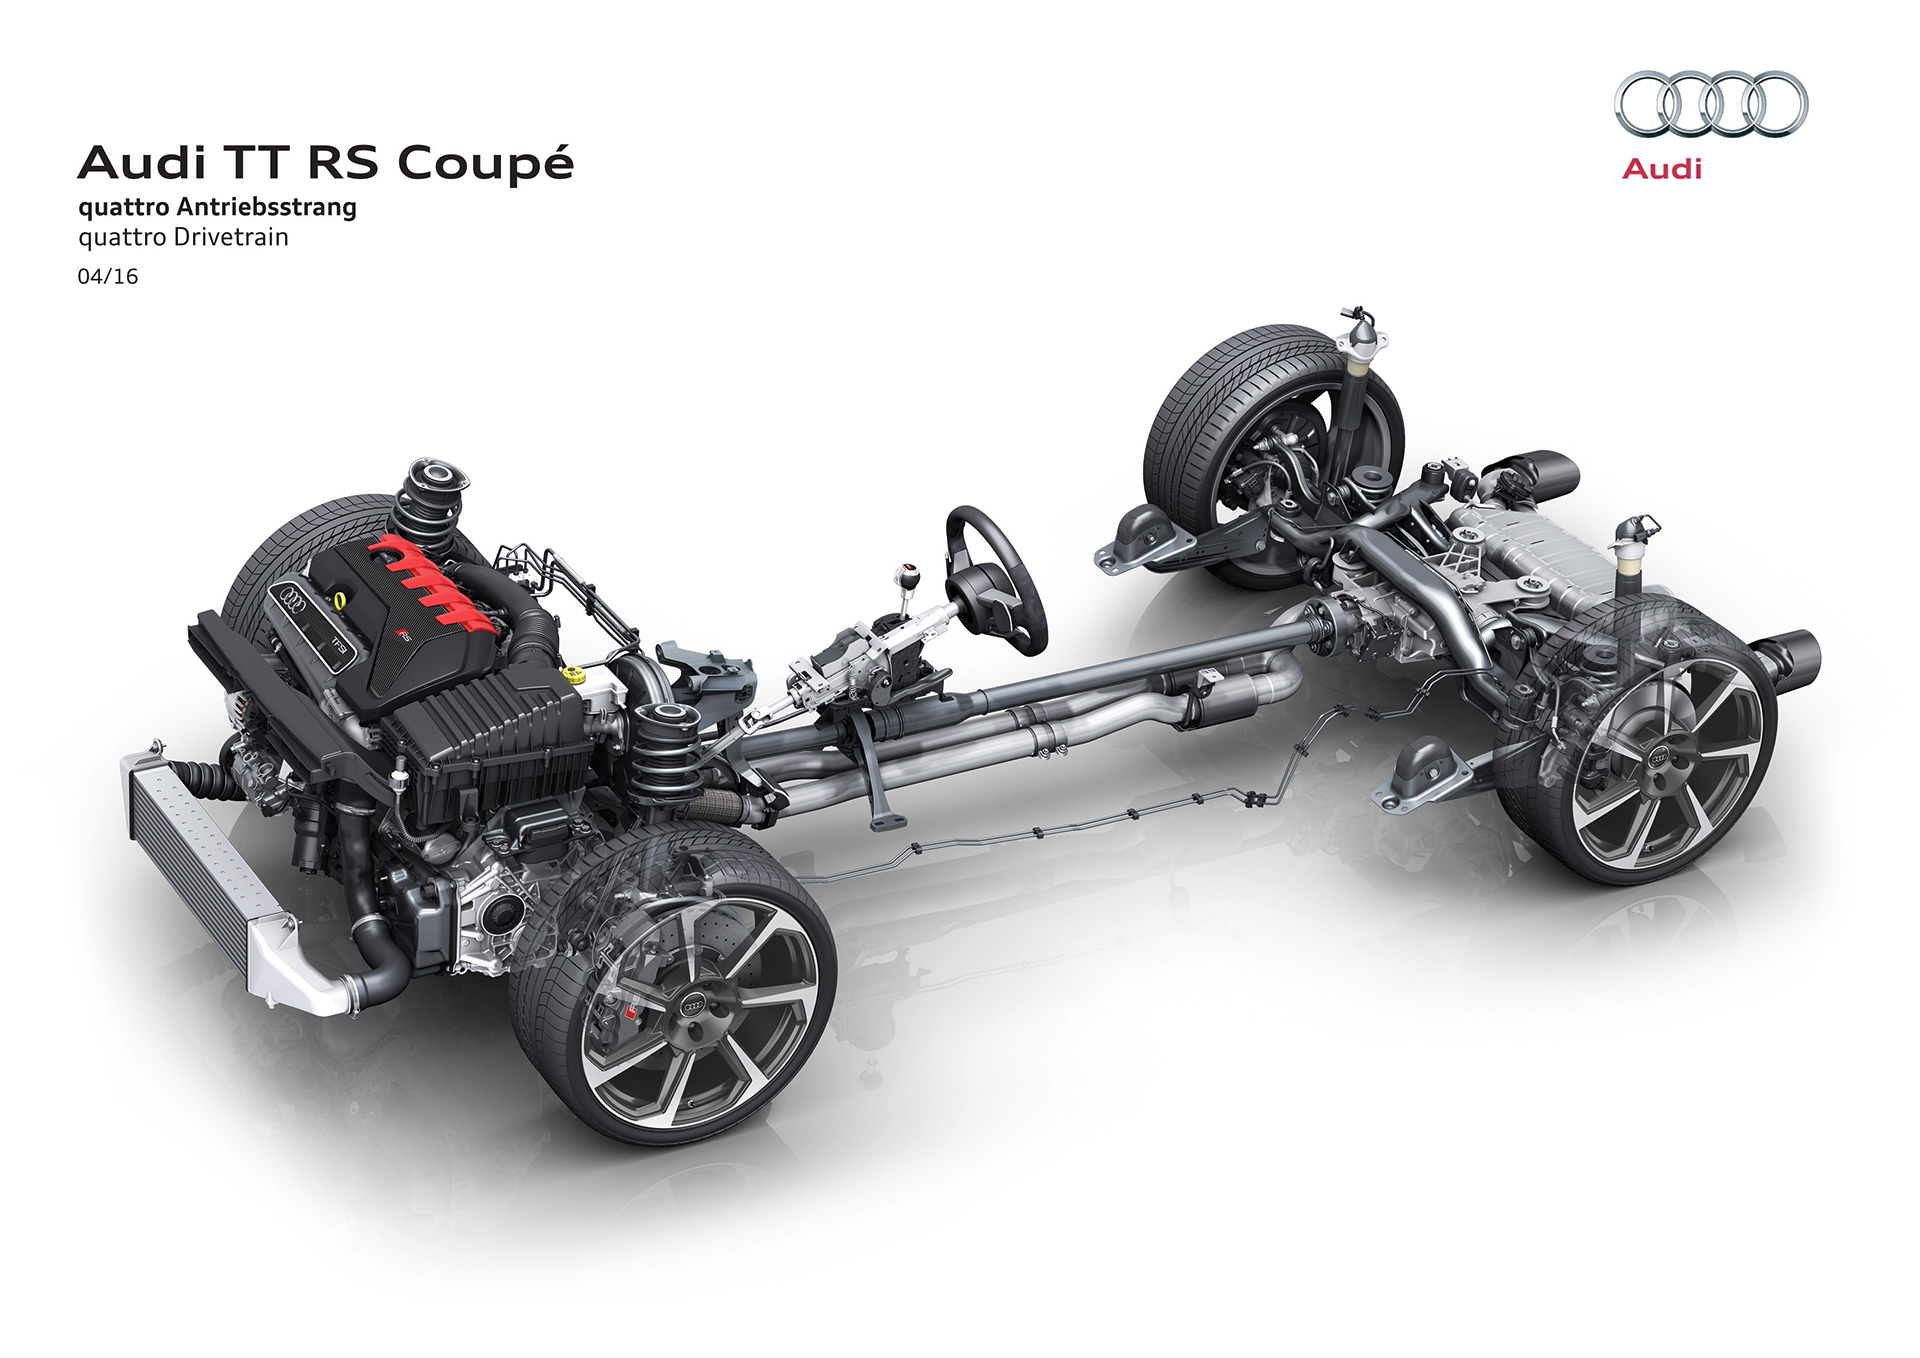 Audi TT RS coupe - 2016 - quattro drivetrain engine